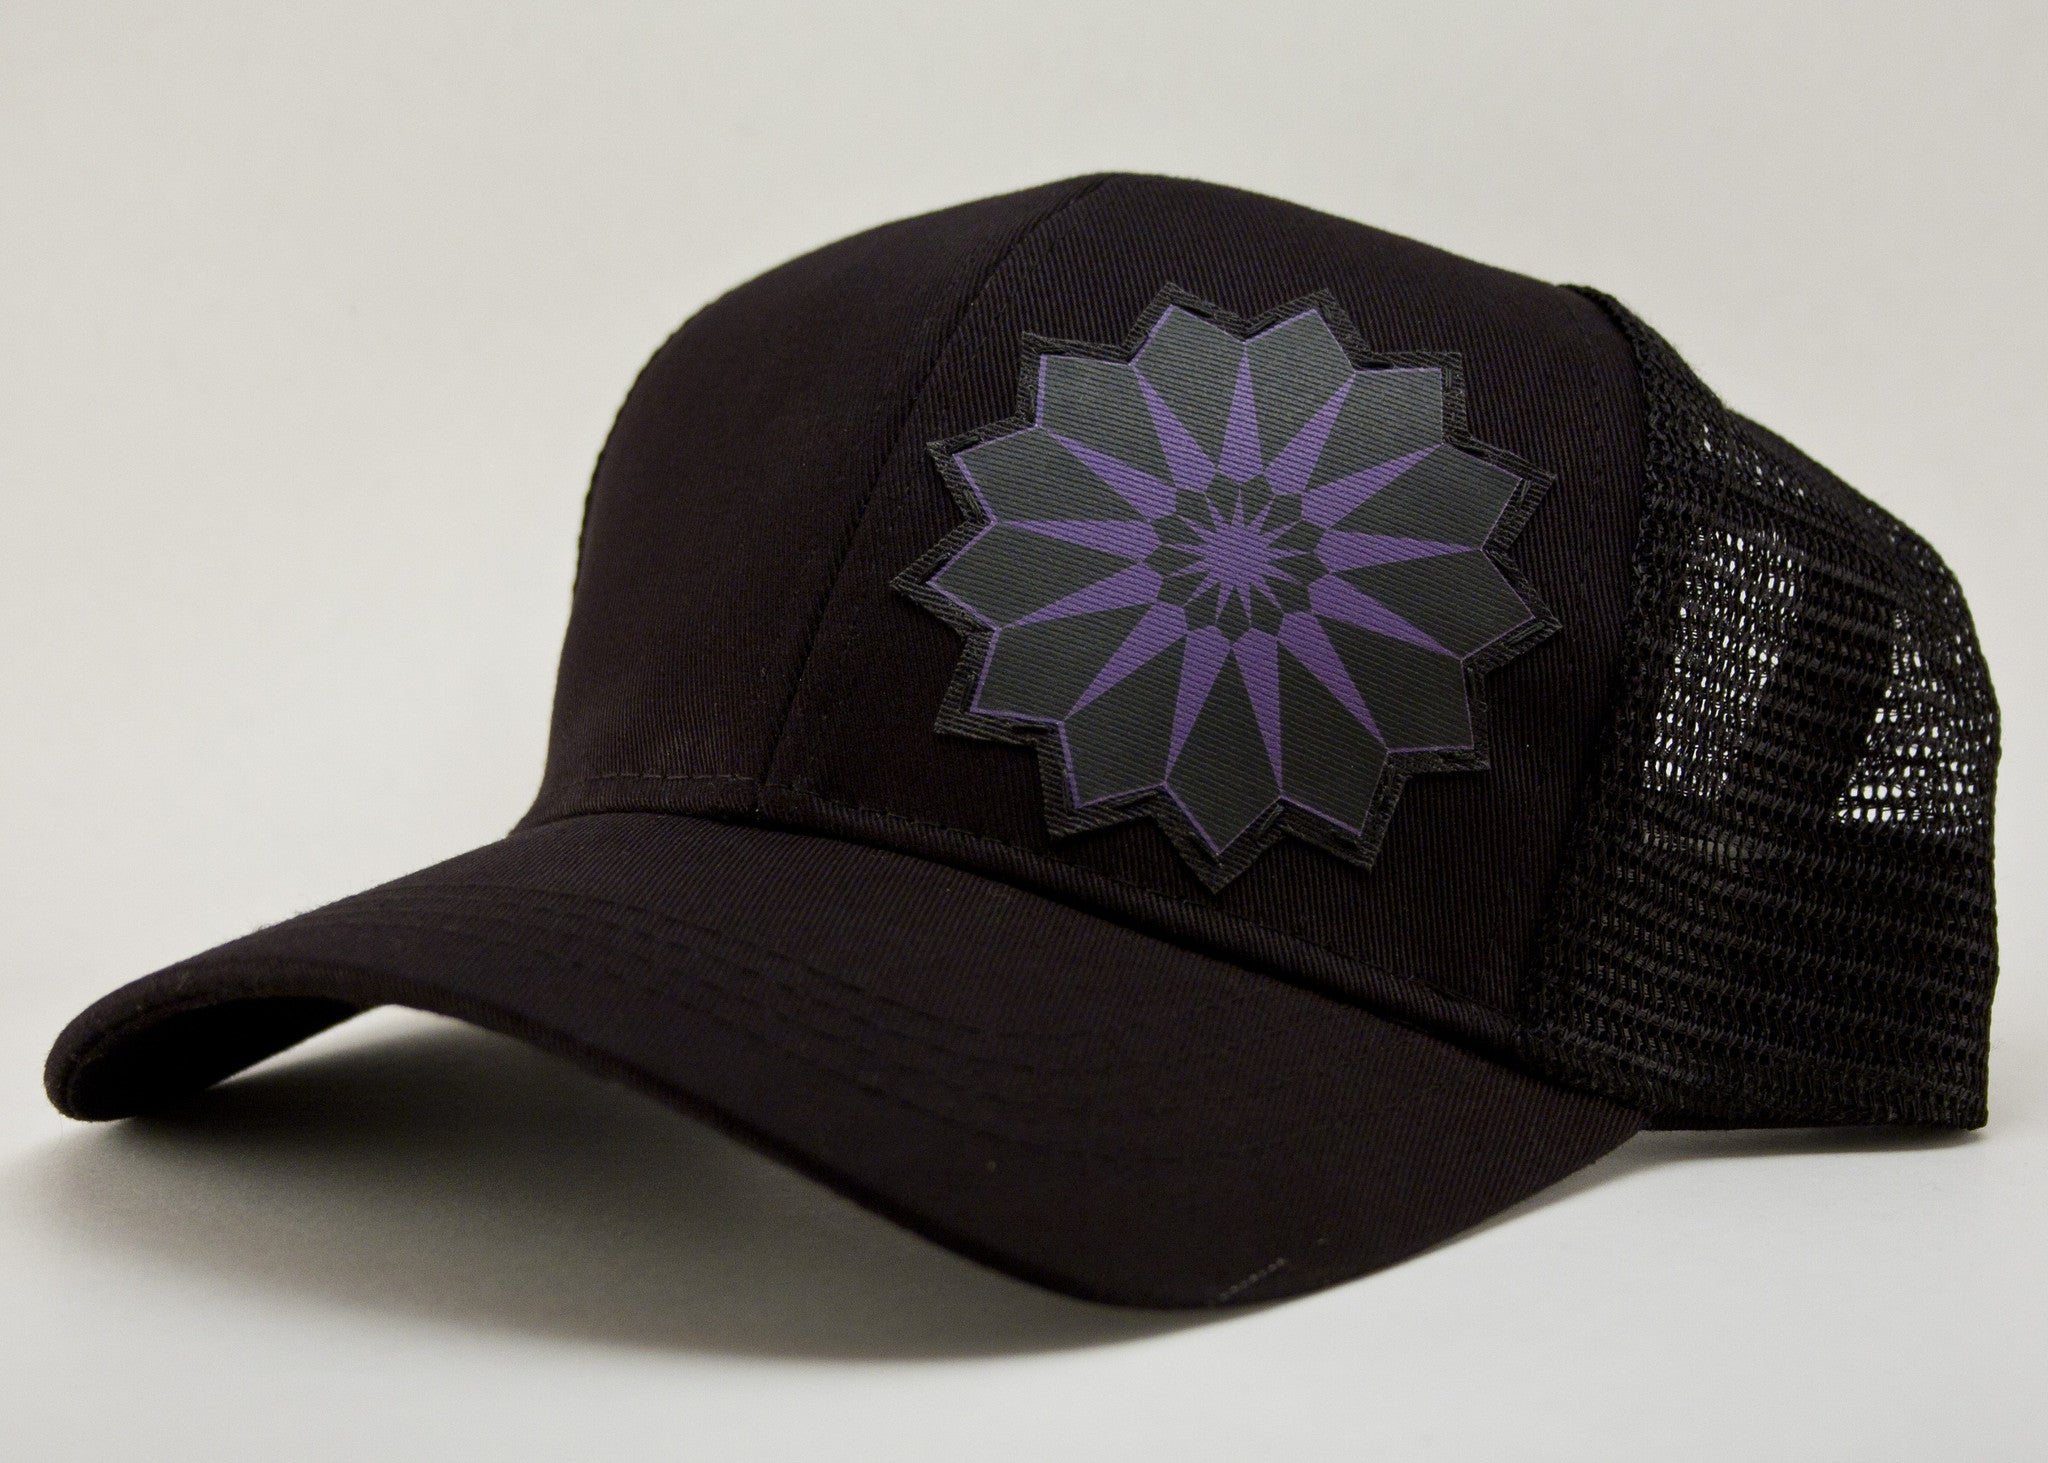 Causes: Third Eye Chakra - Hats